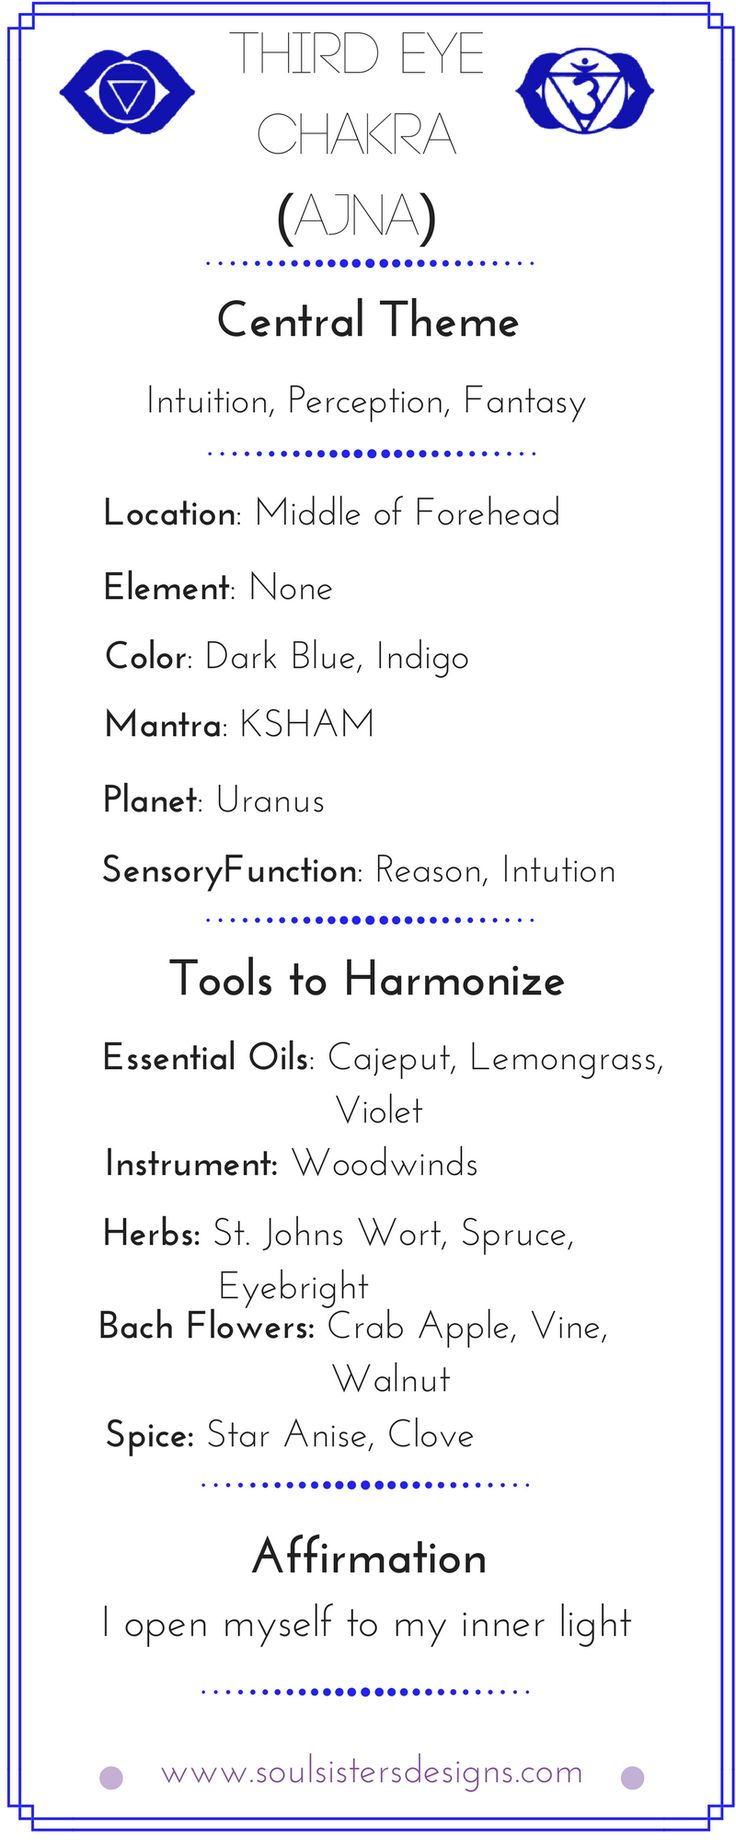 Information related to the Third Eye Chakra from Soul Sisters Designs